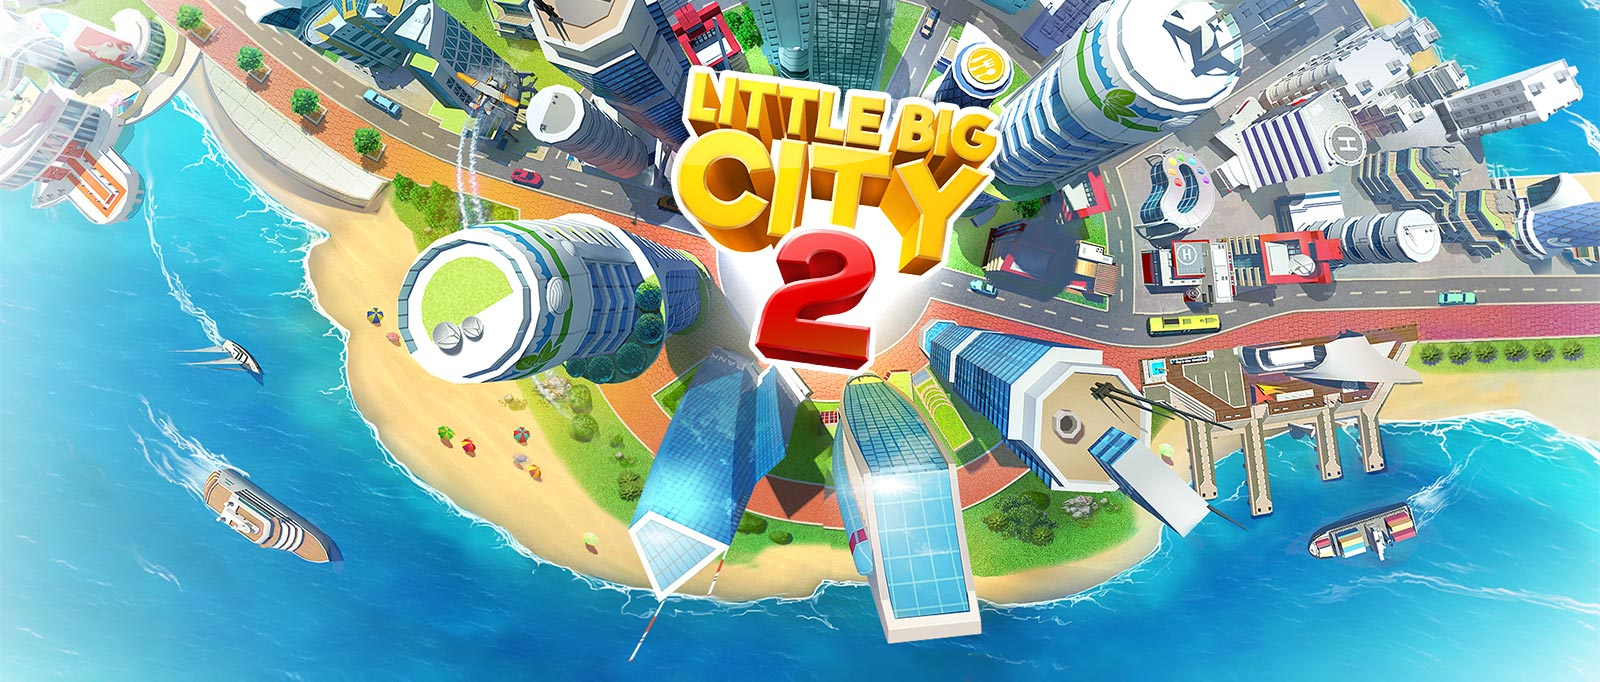 little big city 2 mod apk